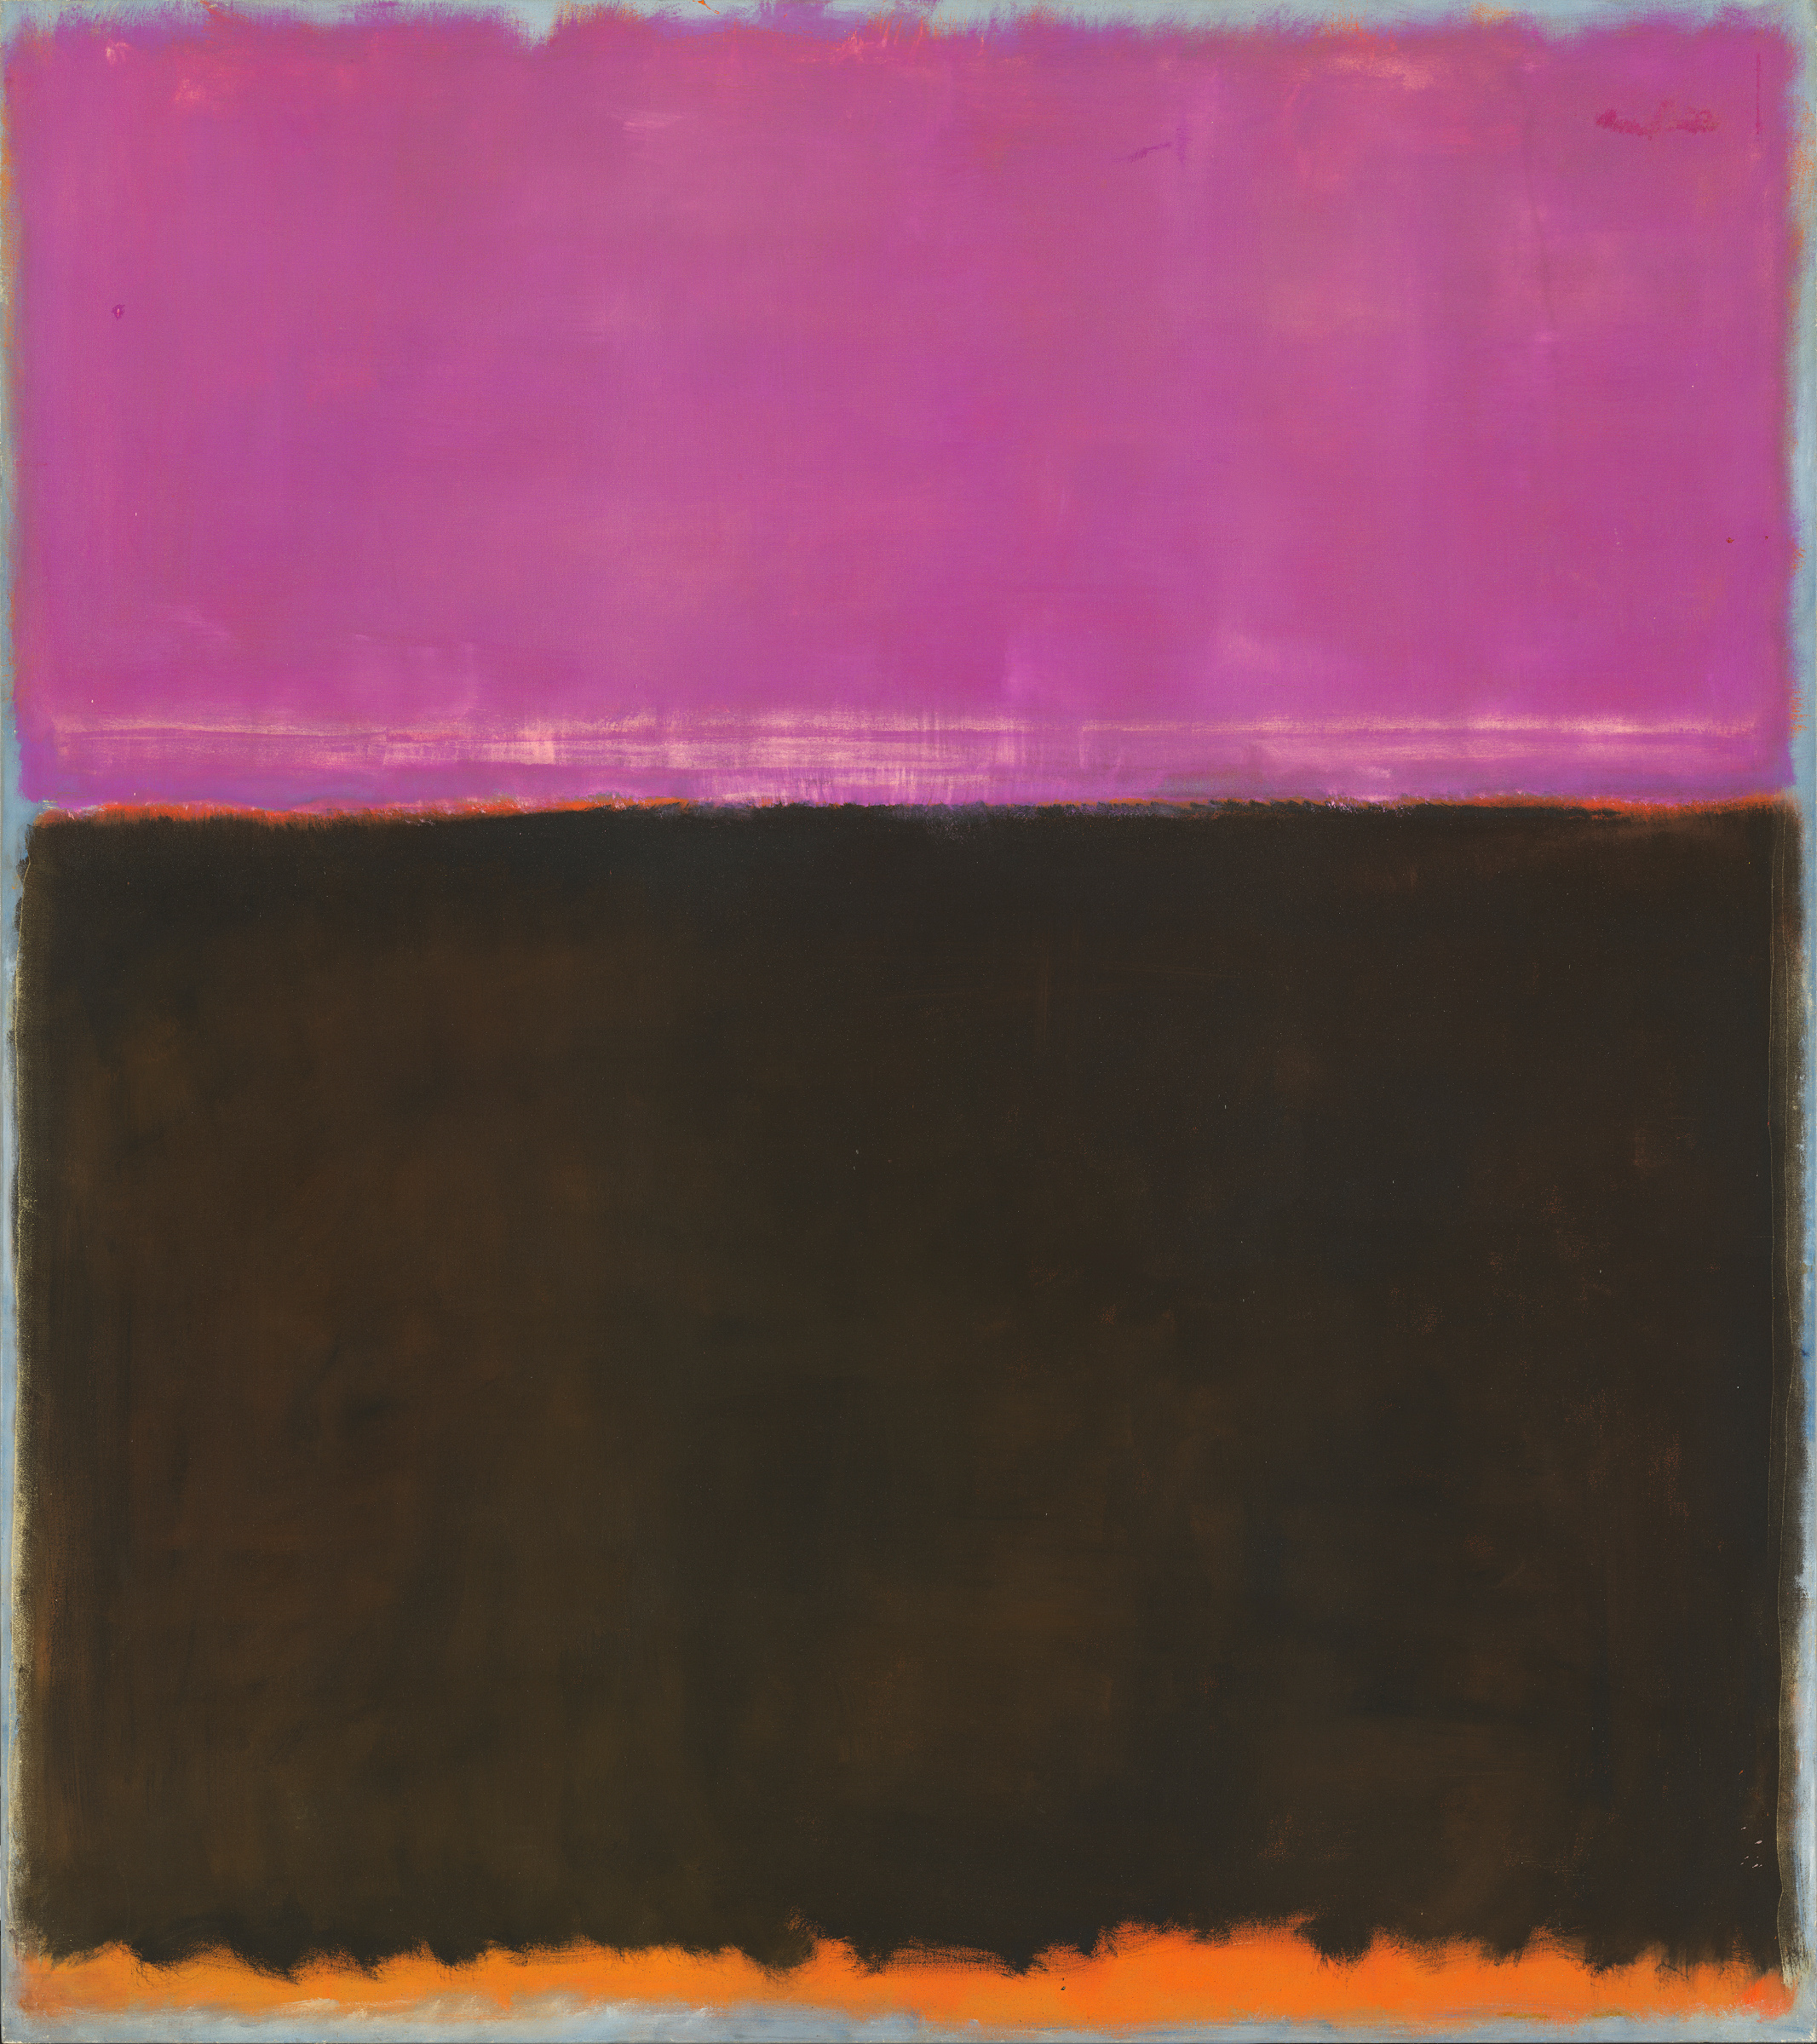 Mark Rothko, Untitled, 1953, mixed media on canvas, National Gallery of Art, Washington, Gift of The Mark Rothko Foundation, Inc. © 1998 by Kate Rothko Prizel and Christopher Rothko courtesy Museum of Fine Arts Houston